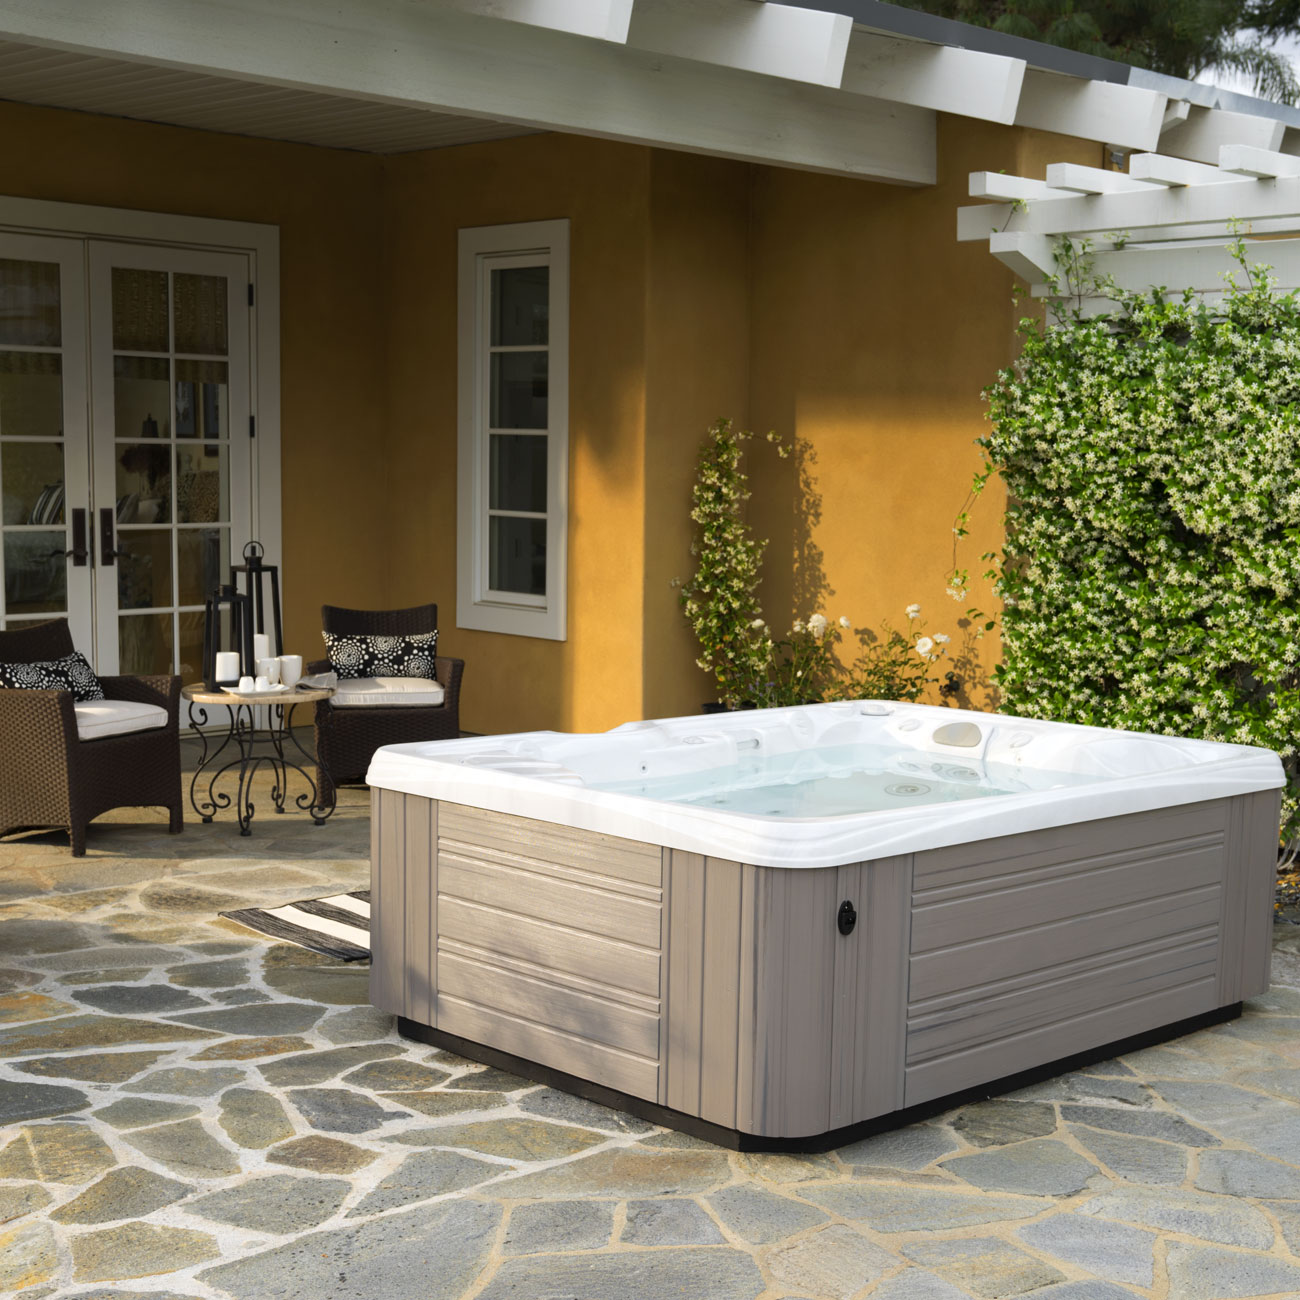 Caldera Spa Kauai 3 Person Luxury Outdoor Living